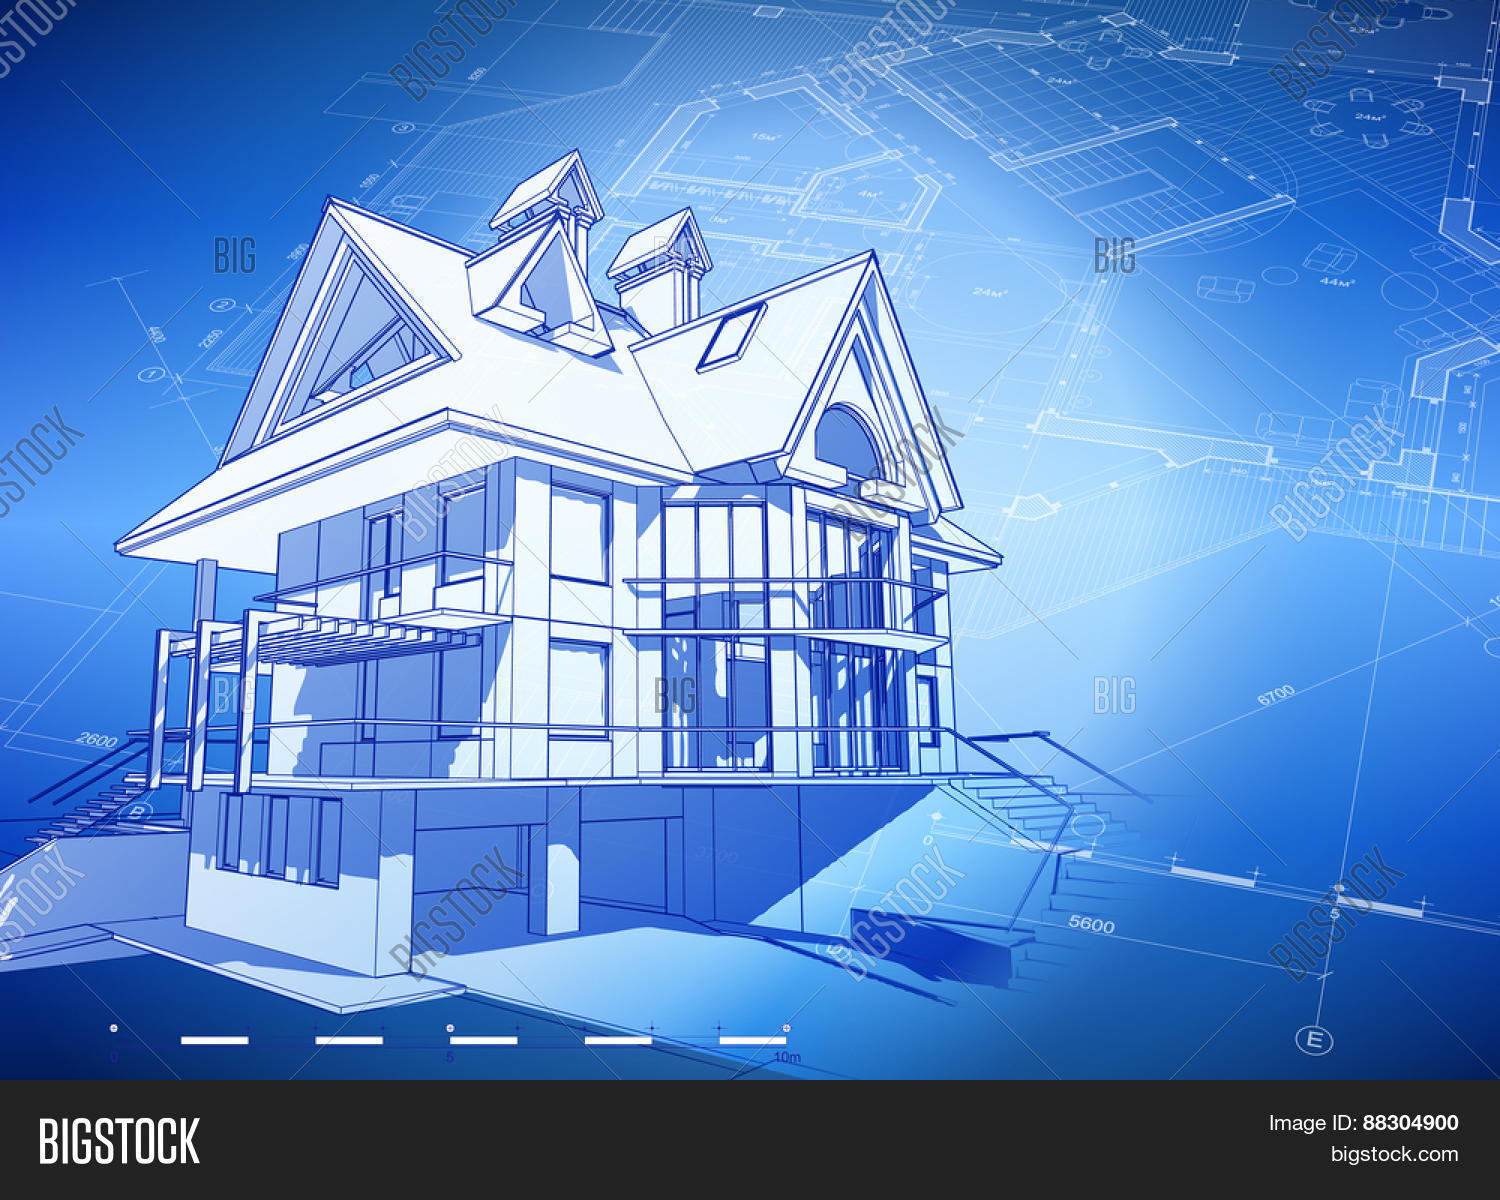 Architecture design blueprint 3d vector photo bigstock for Print architectural plans